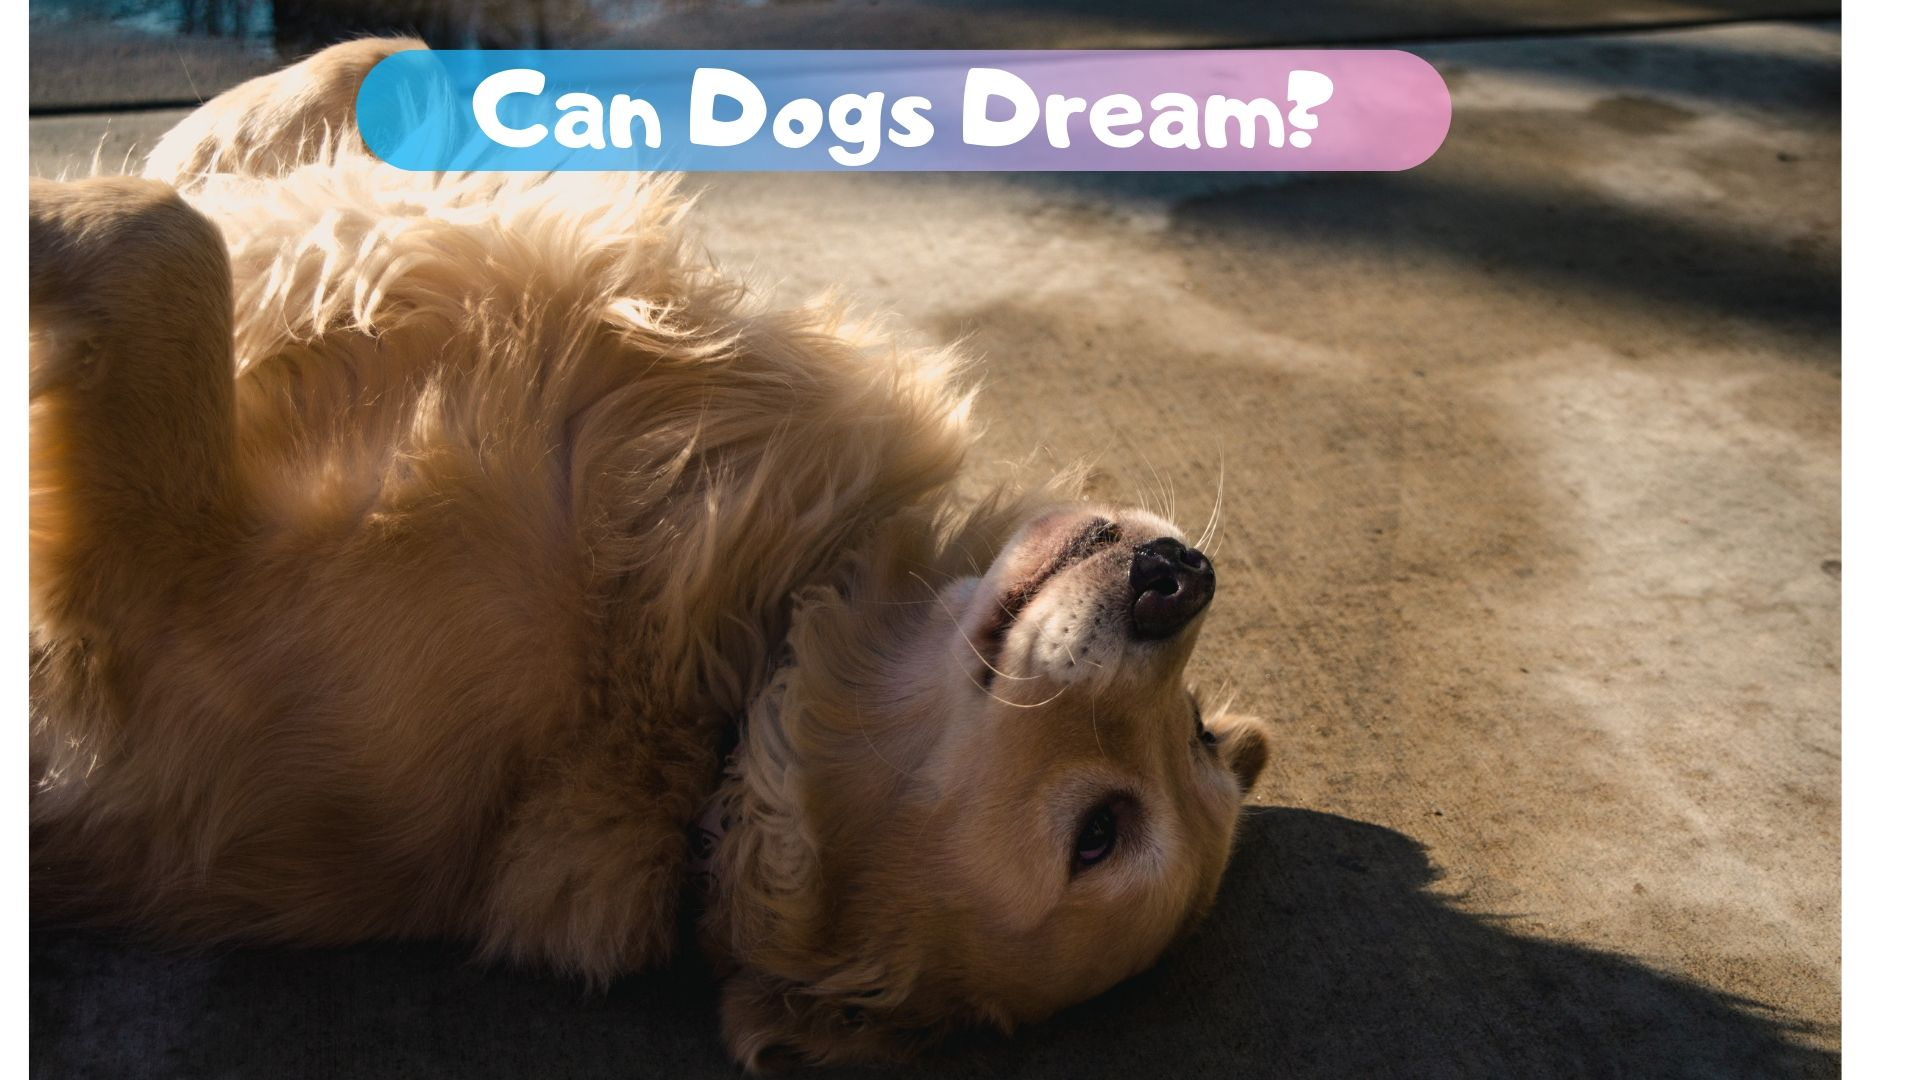 Can dogs dream?